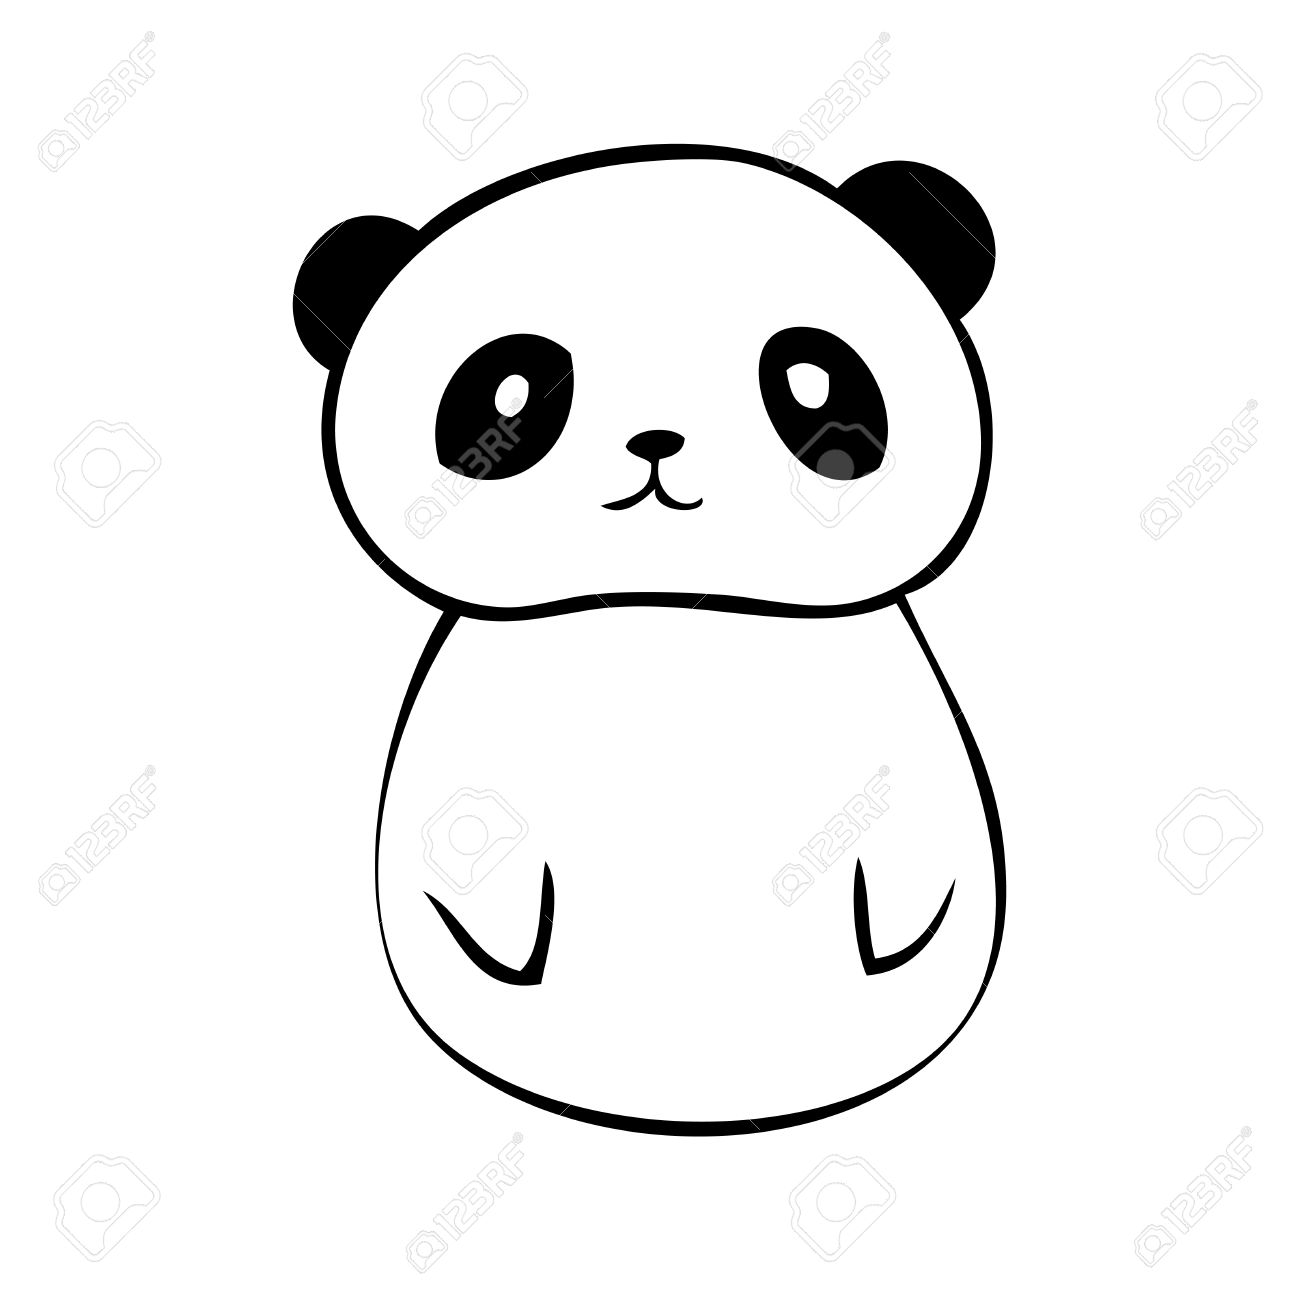 Vector Tail Panda Icon Little Black On White Background